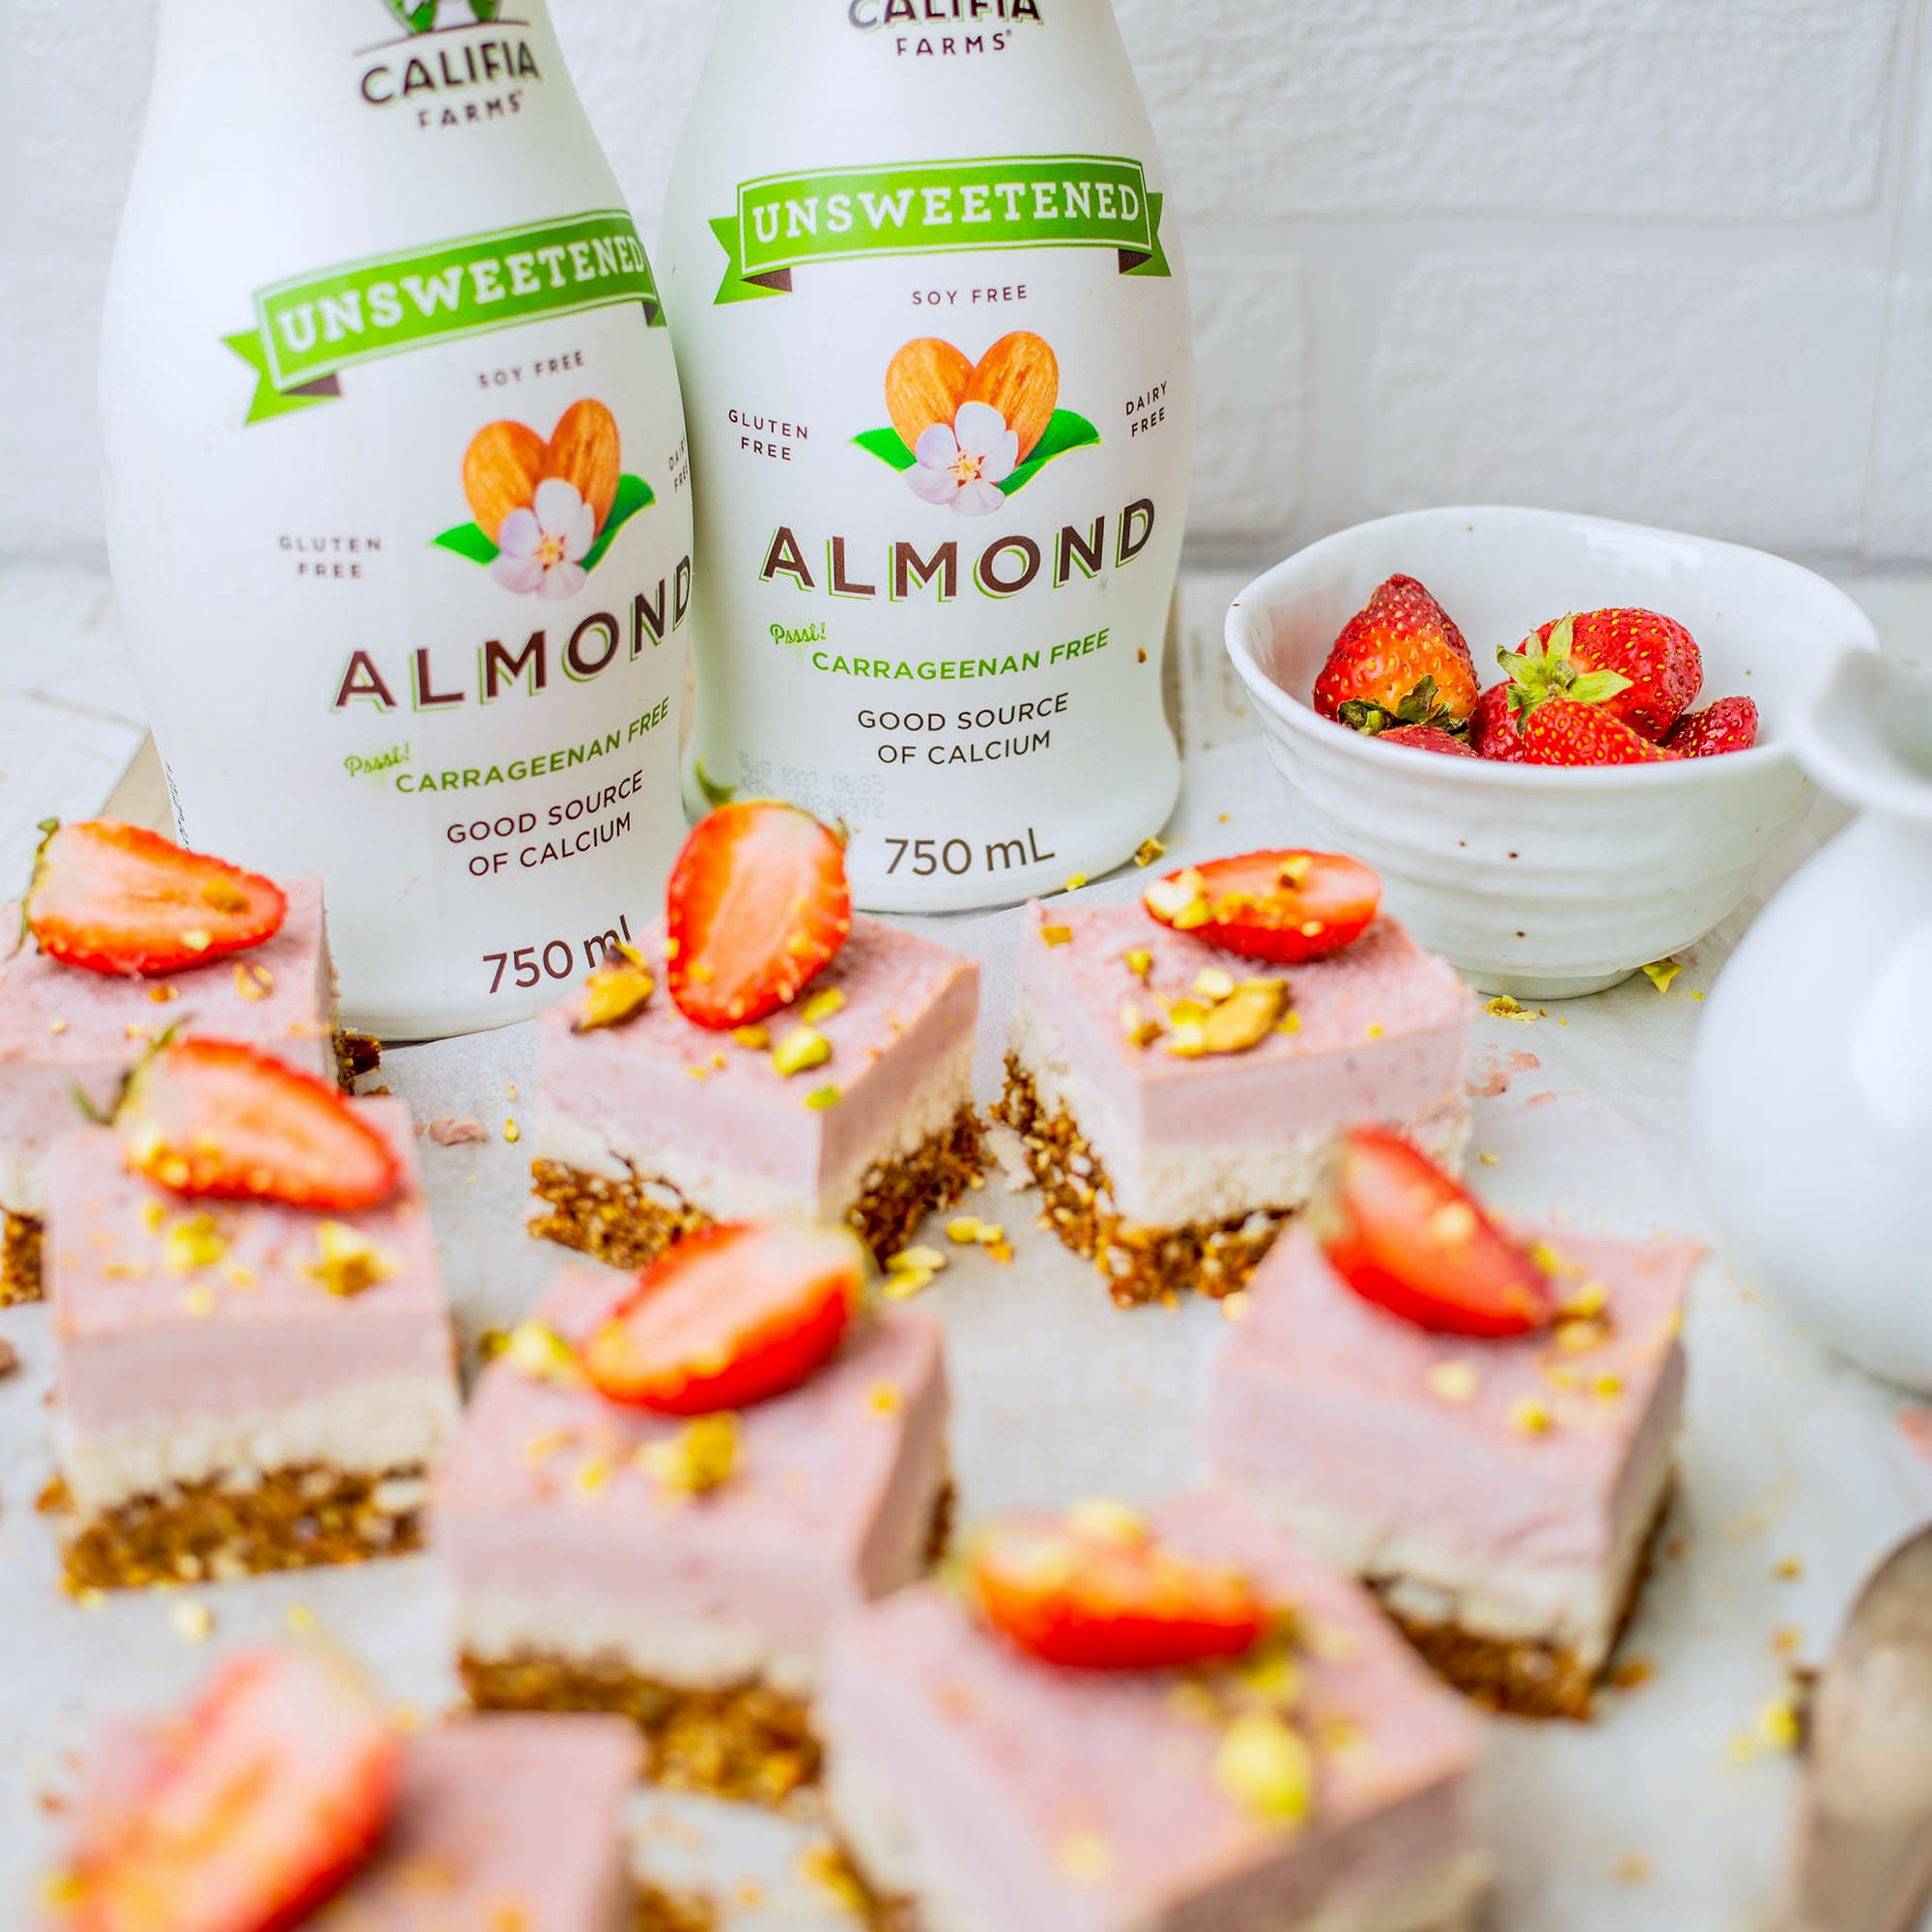 Califia Farms Unsweetened Almond Milk Review with Vegan White Chocolate Strawbery Slice Recipe